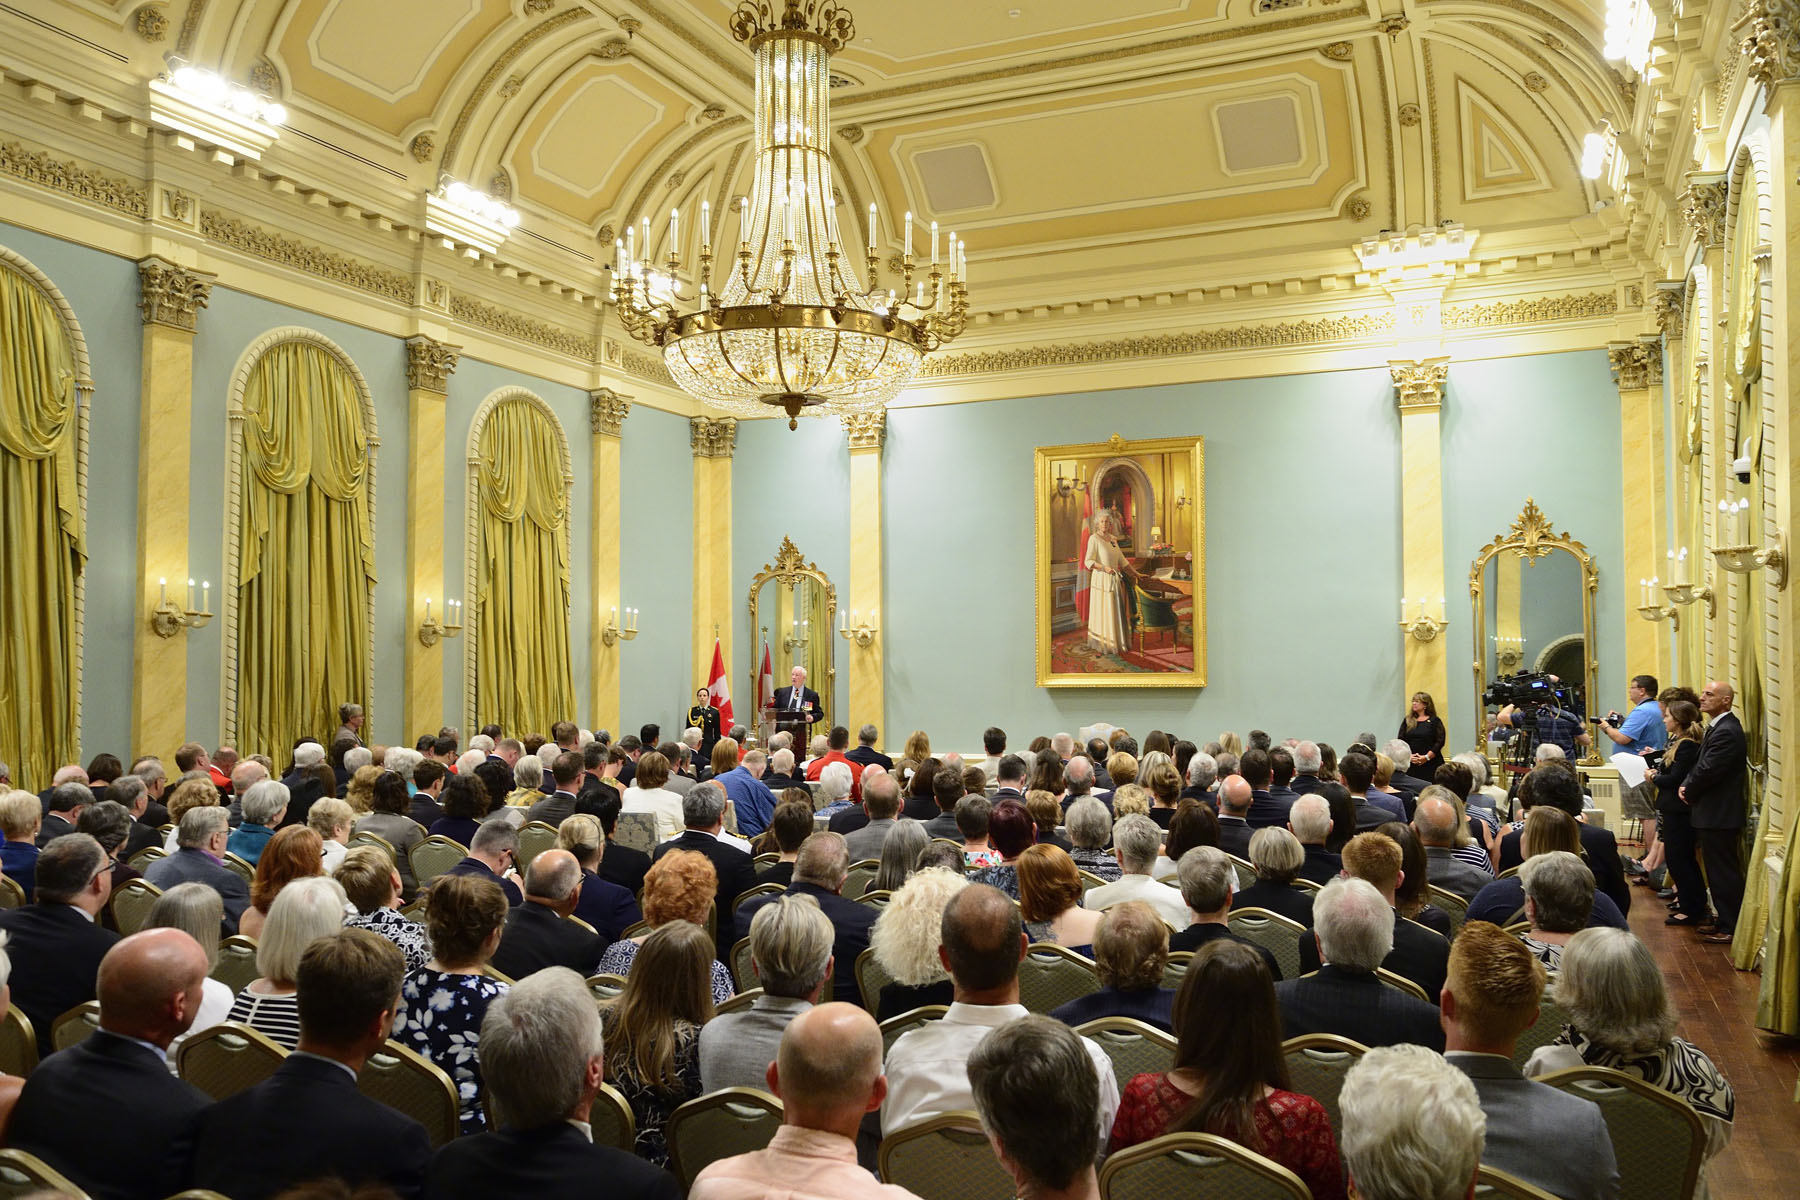 The Governor General presented the Sovereign's Medal for Volunteers to 46 exceptional volunteers from Canada's Capital Region at a ceremony at Rideau Hall. The medal recognizes the remarkable volunteer achievements of Canadians from across the country in a wide range of fields.